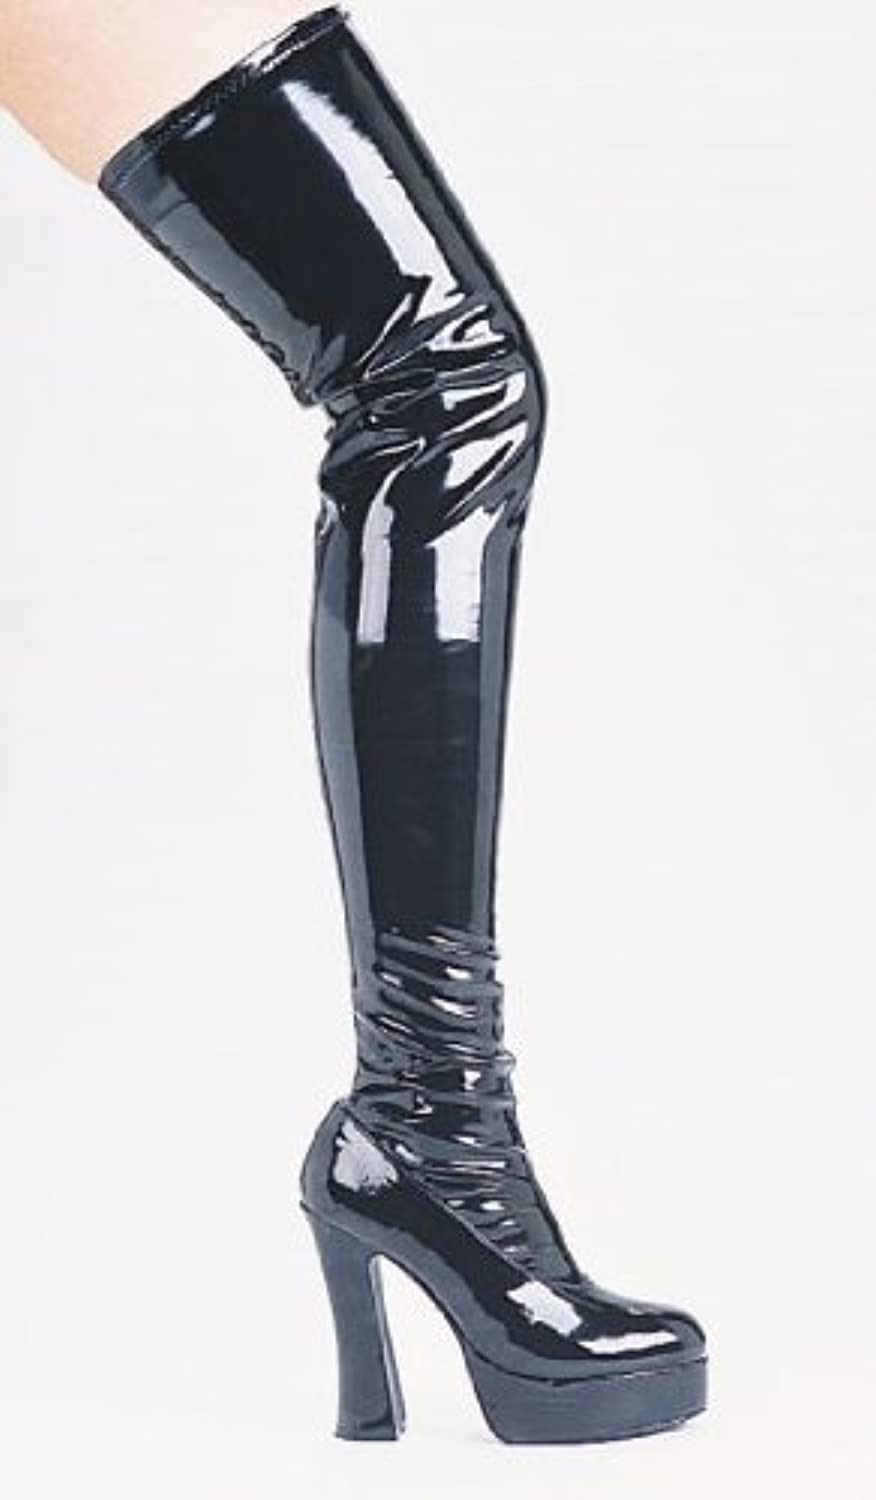 Thrill Thigh High Boot shoes - Size 7